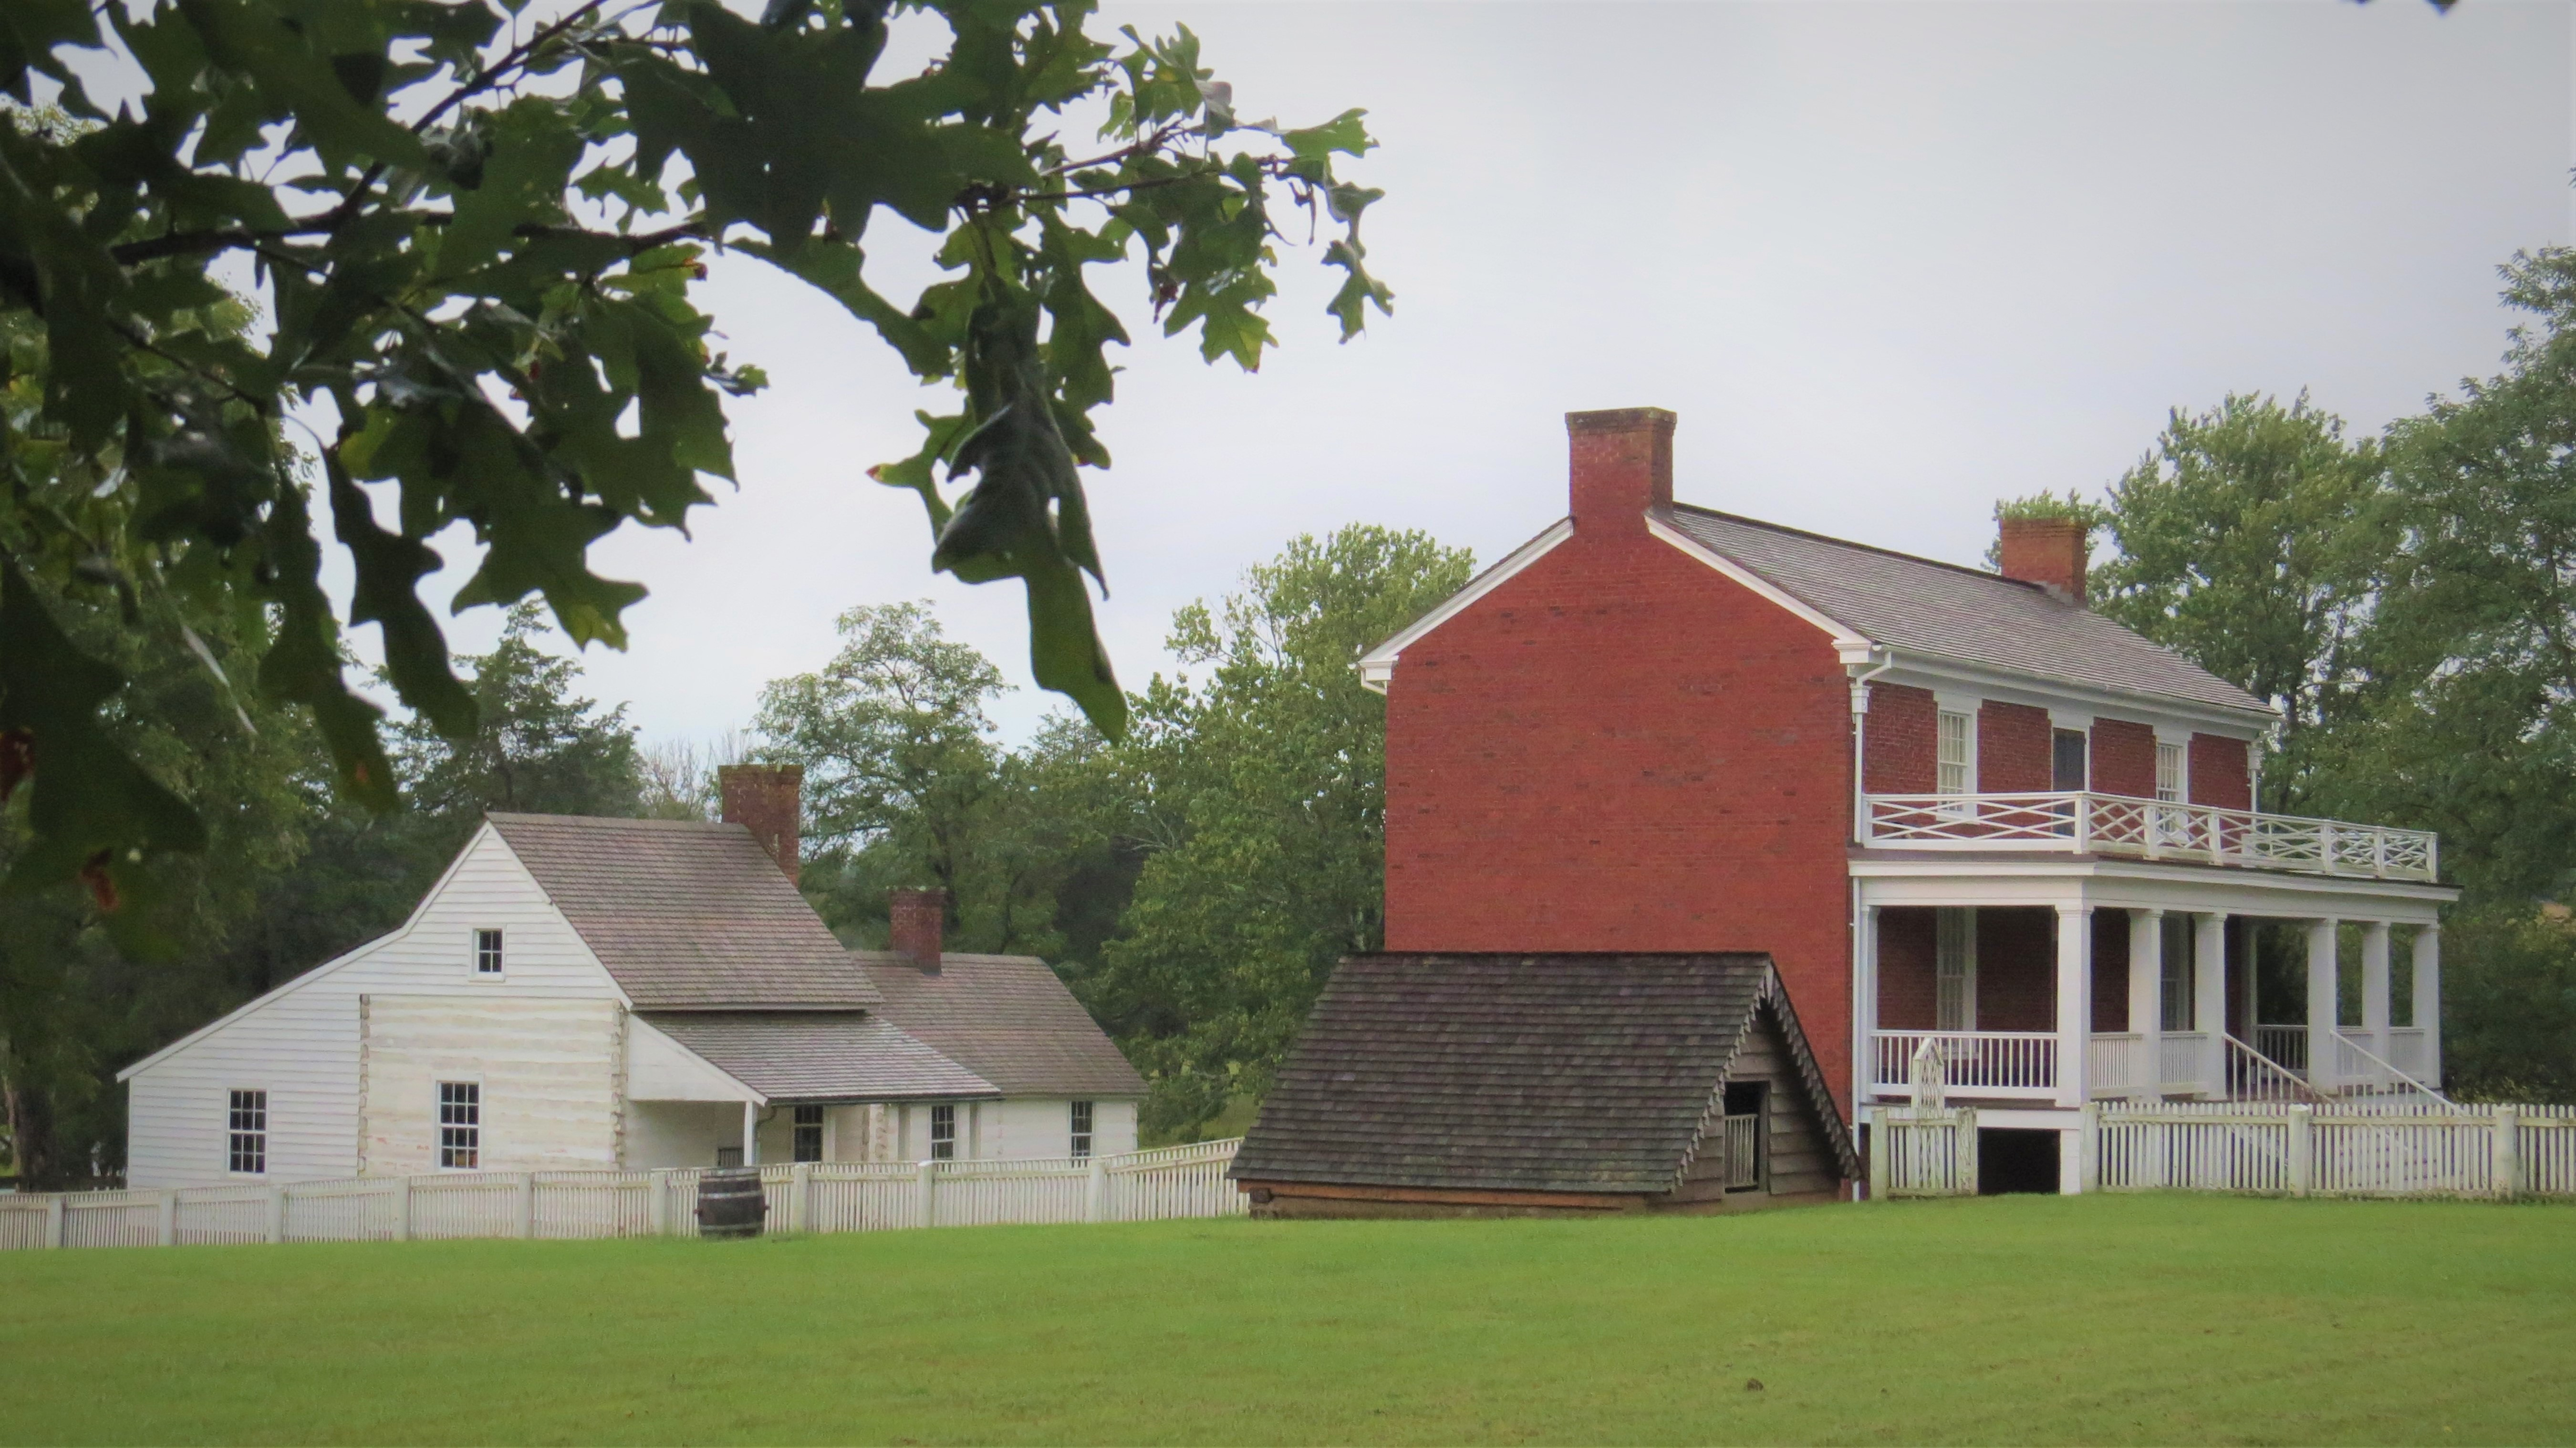 The McLean House section image